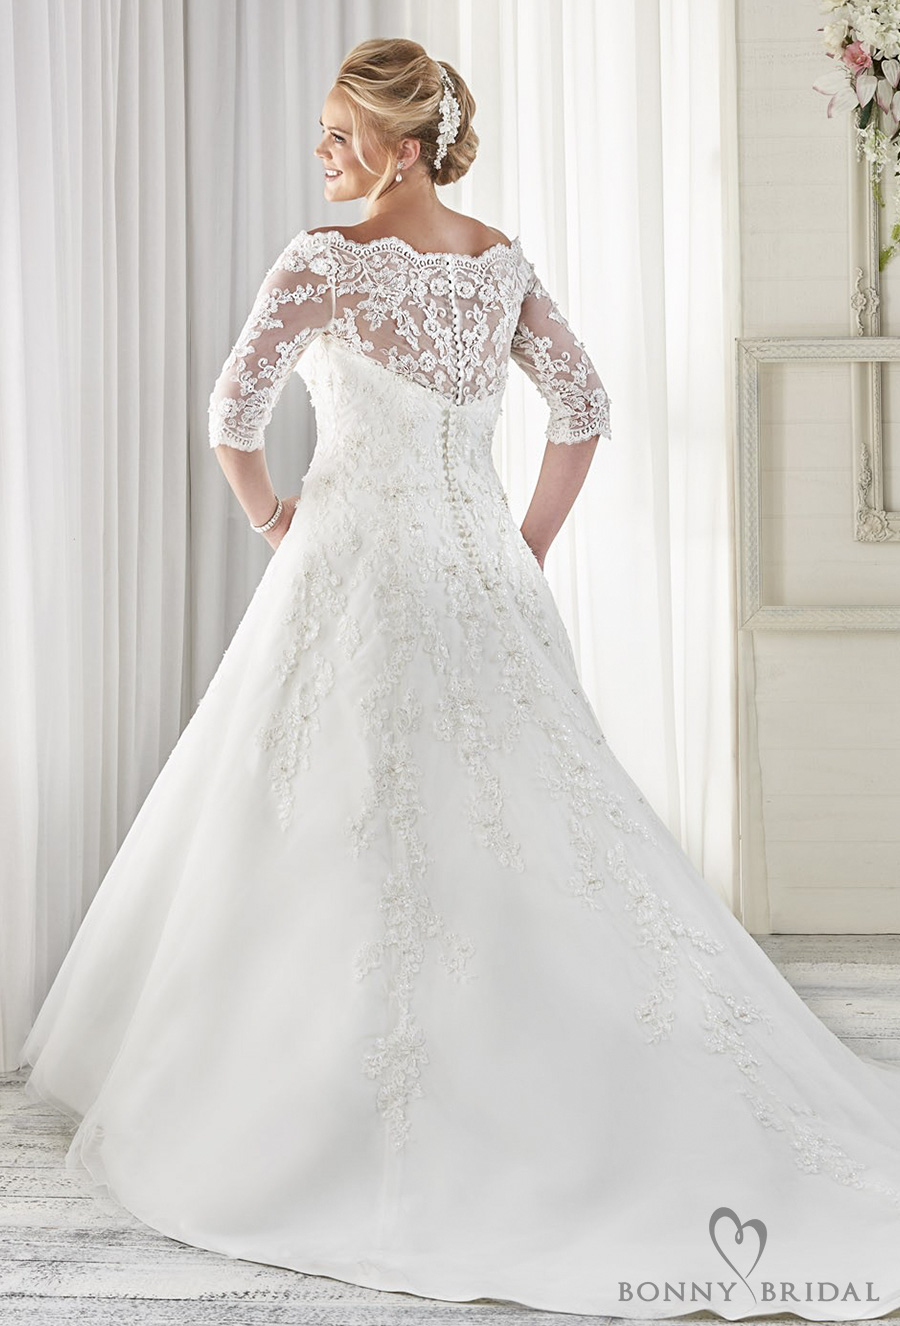 Bonny bridal wedding dresses unforgettable styles for for Wedding dresses with half sleeves